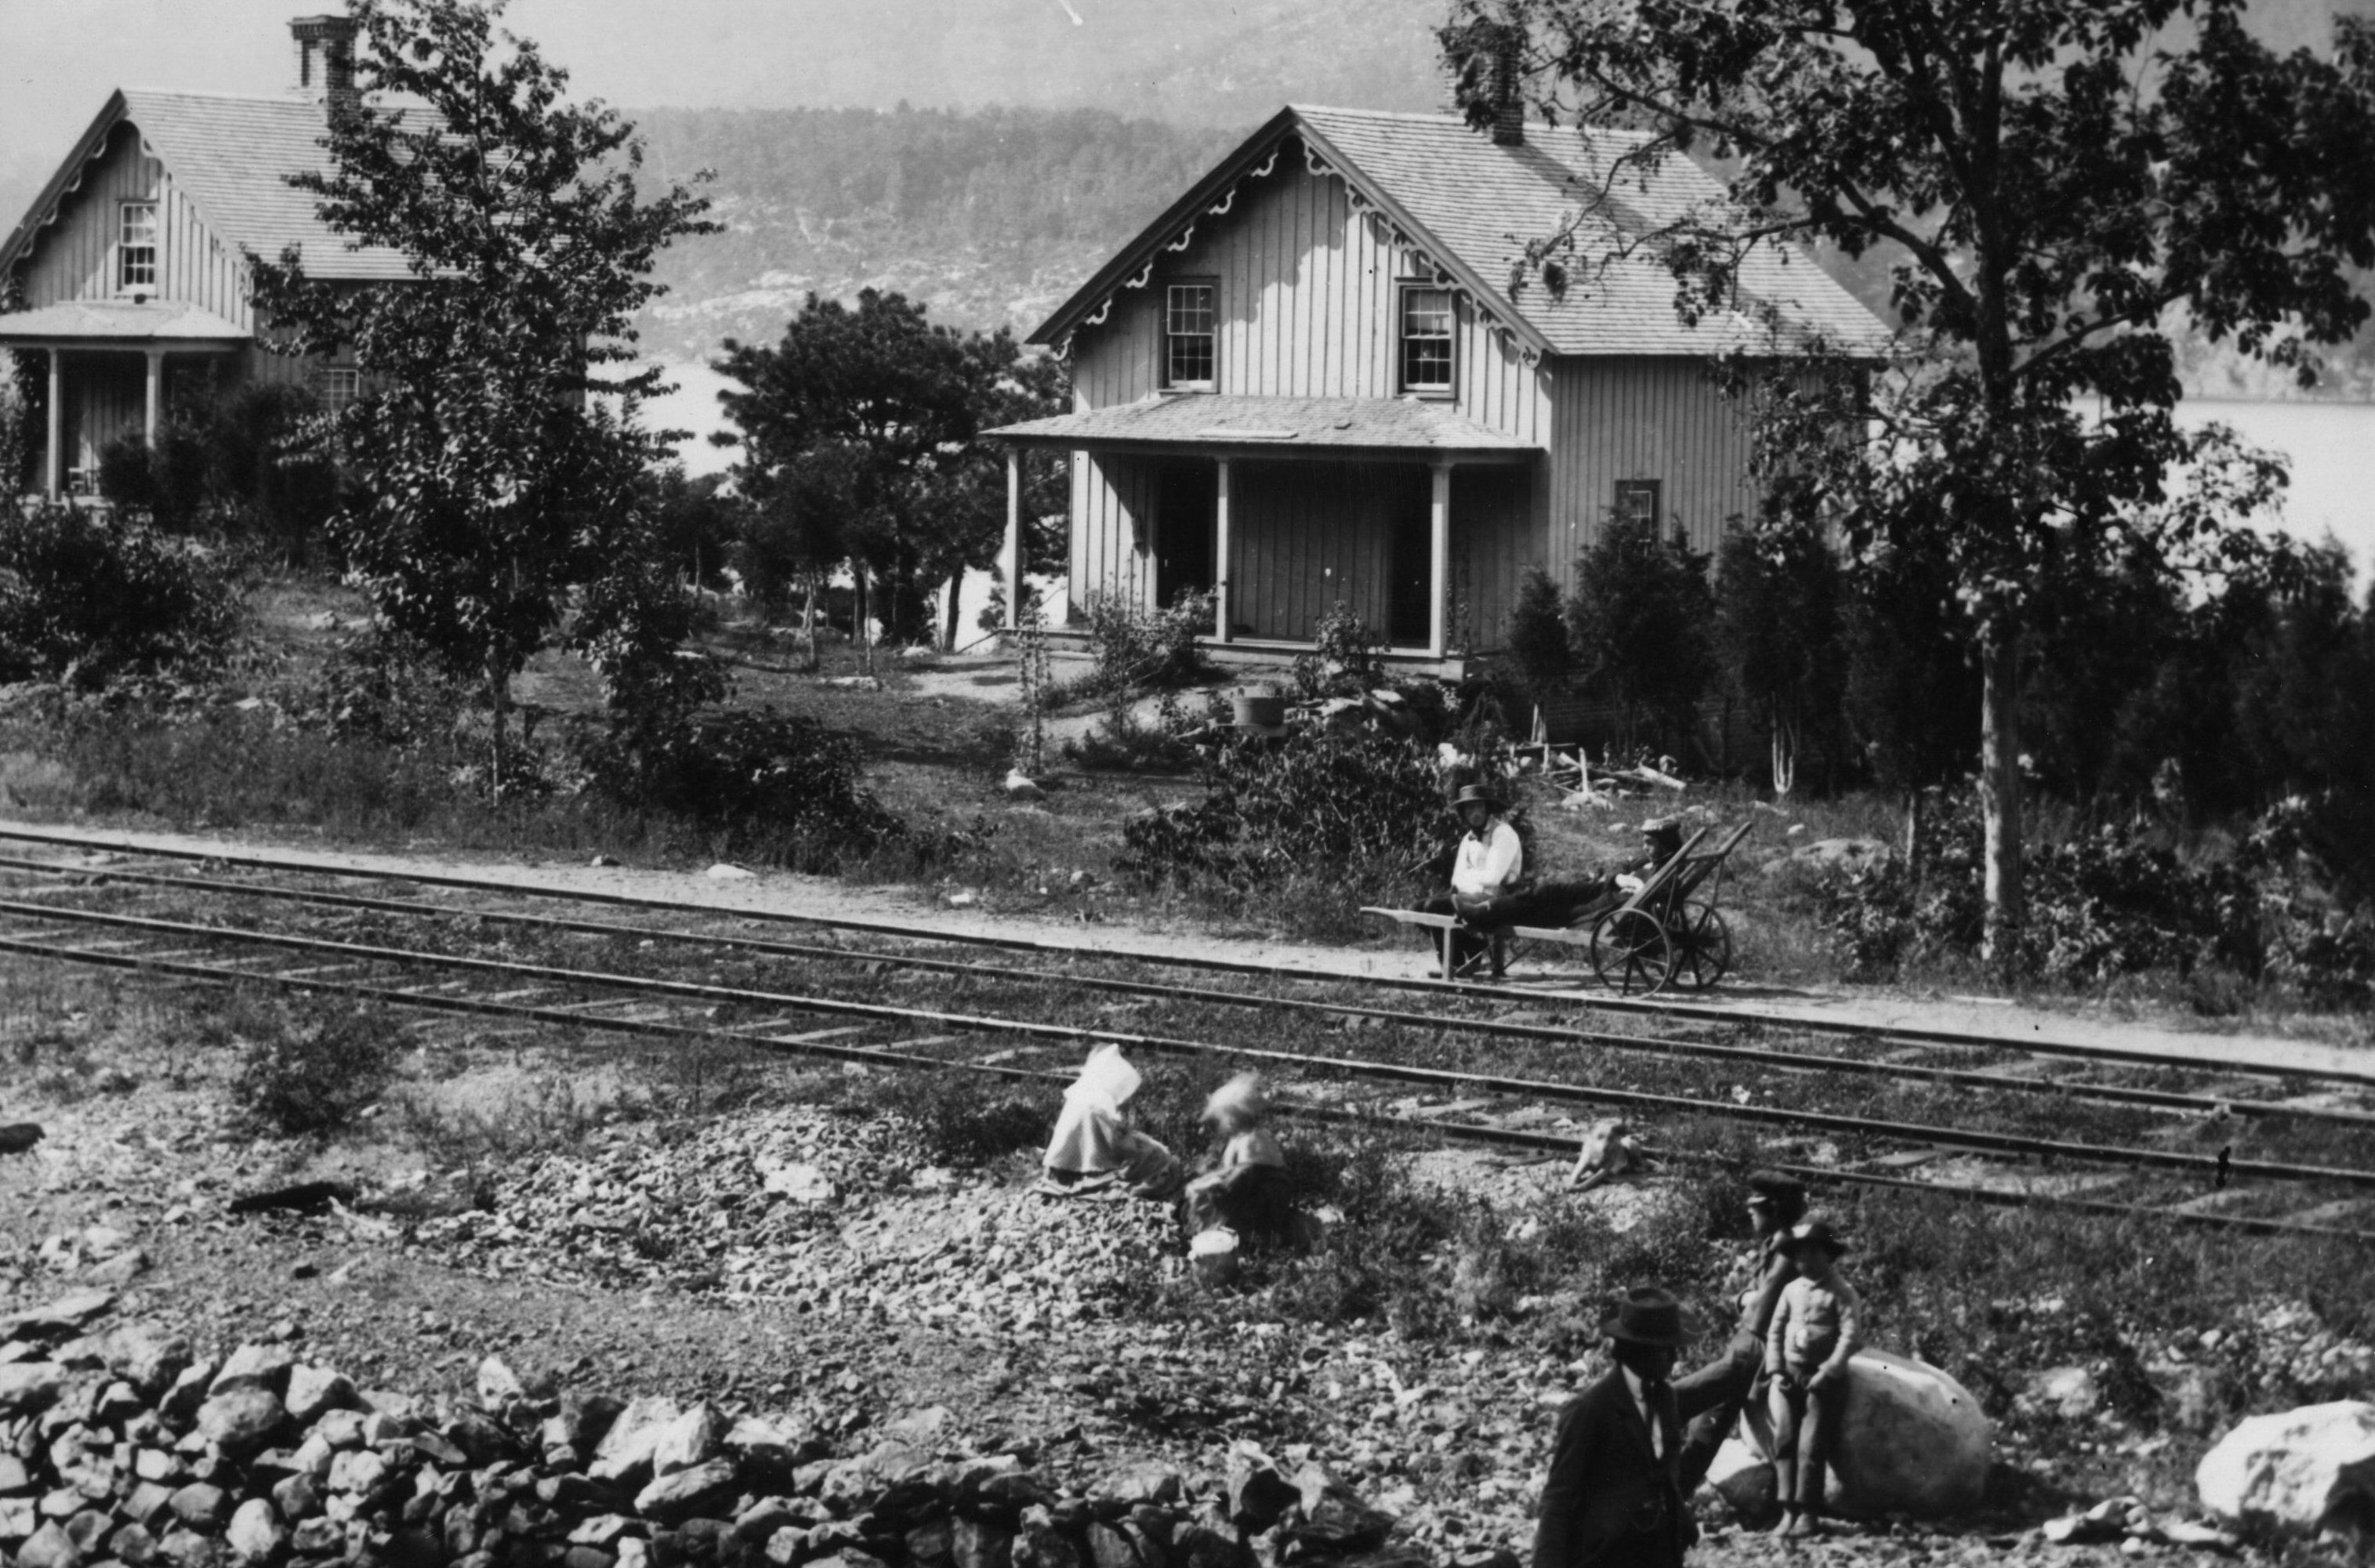 historic black and white photo of houses by railroad tracks